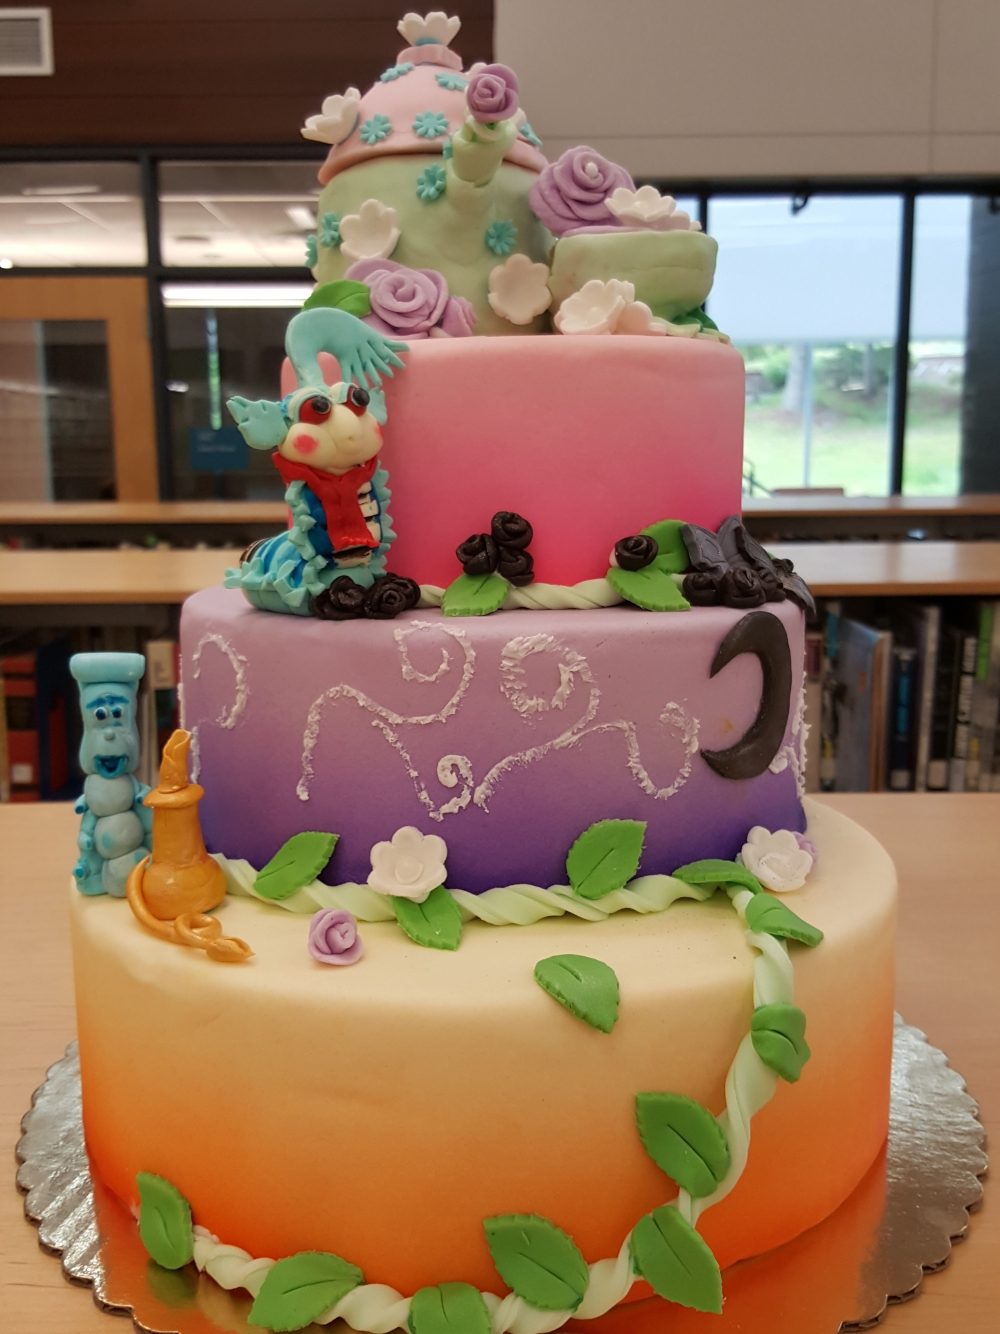 2018 Cakes Alice in Wonderland - front view